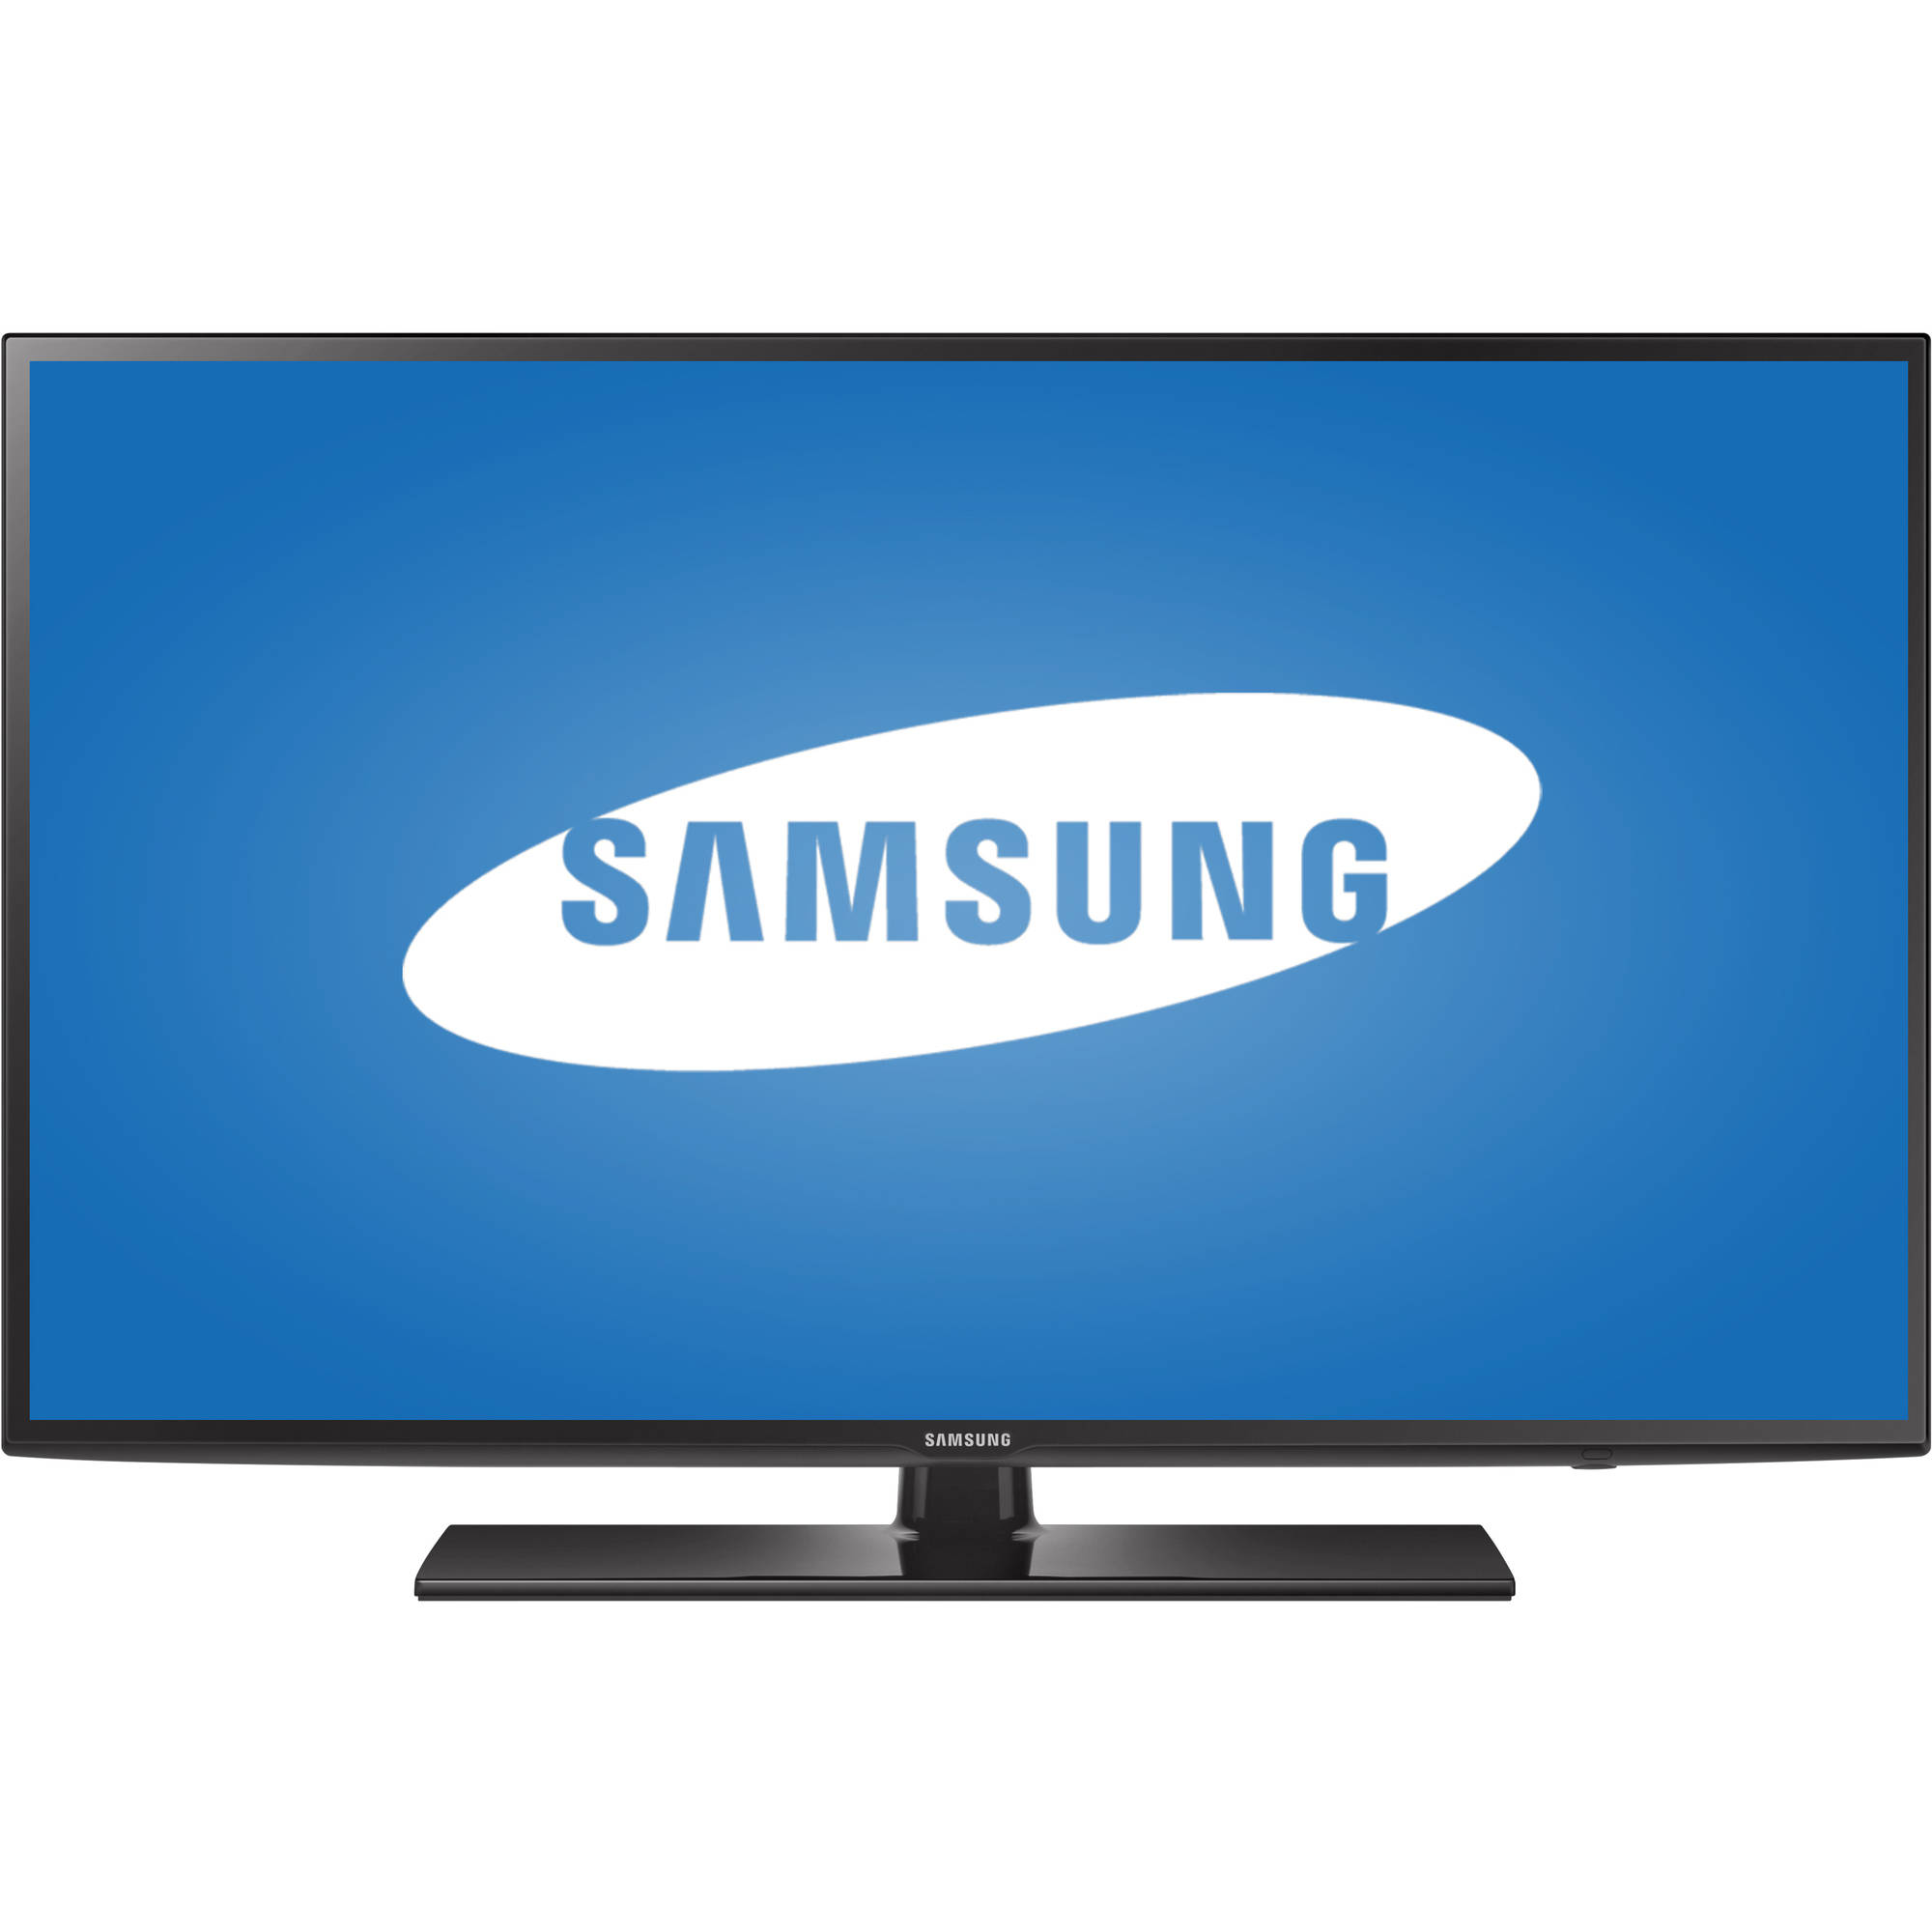 "SAMSUNG 55"" 6200 Series - Full HD Smart LED TV - 1080p, 120MR (Model#: UN55J6201)"